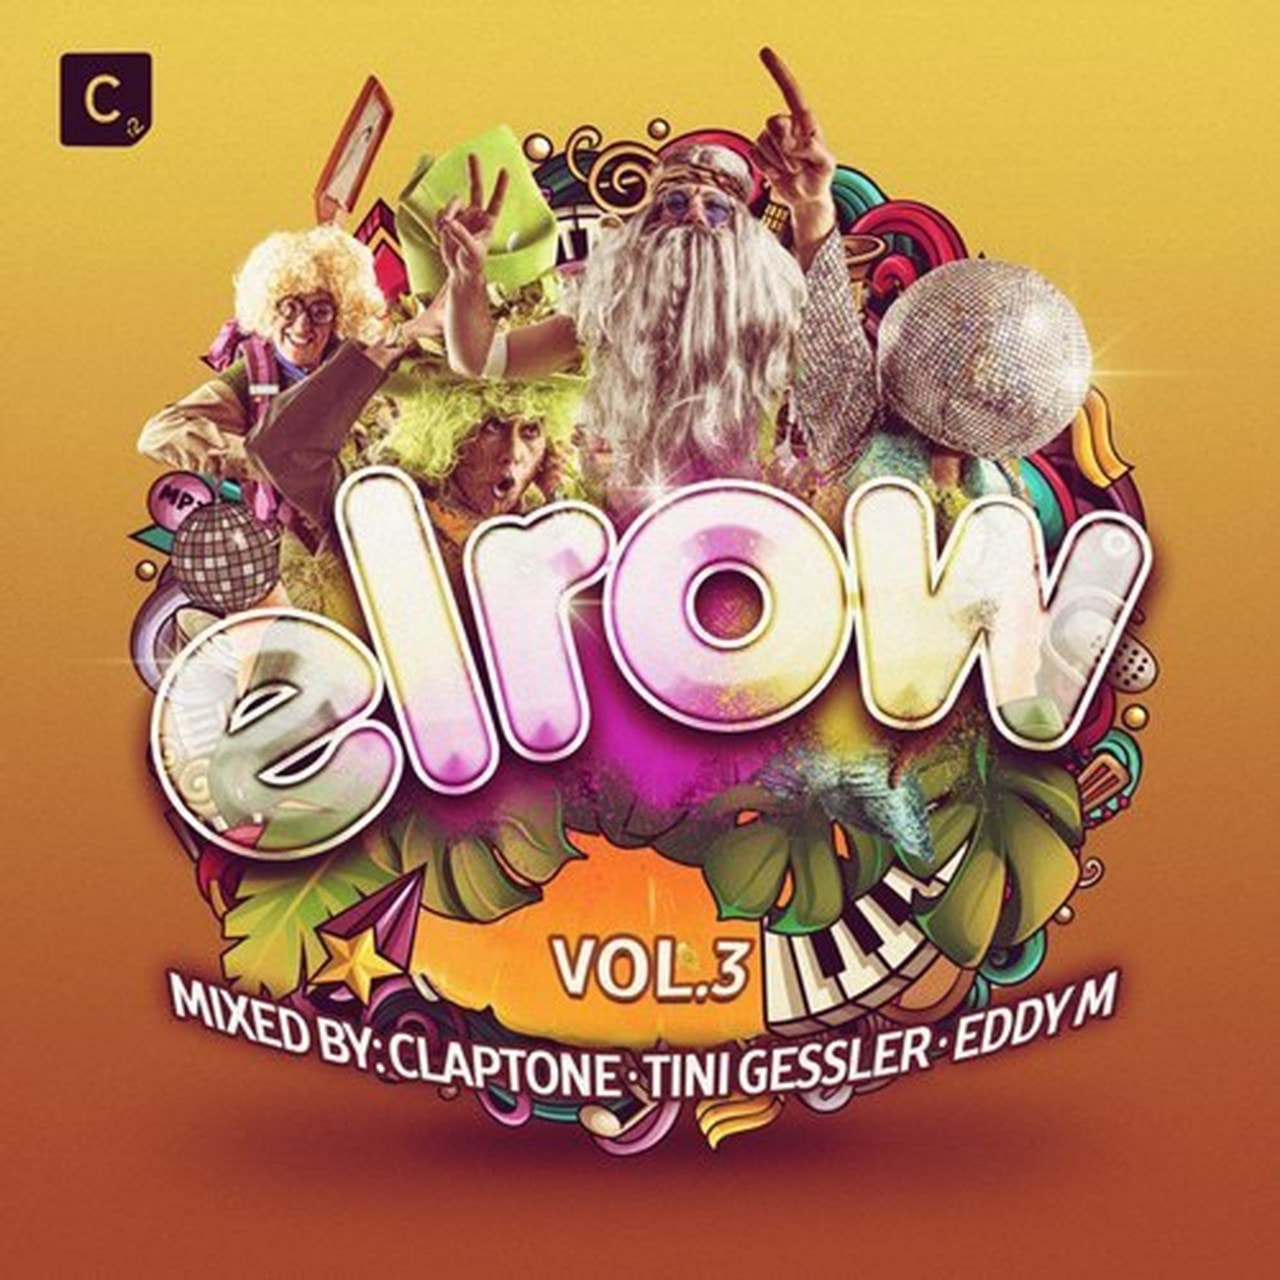 Elrow: Mixed By Claptone, Tini Gessler & Eddy M - Volume 3 - 1